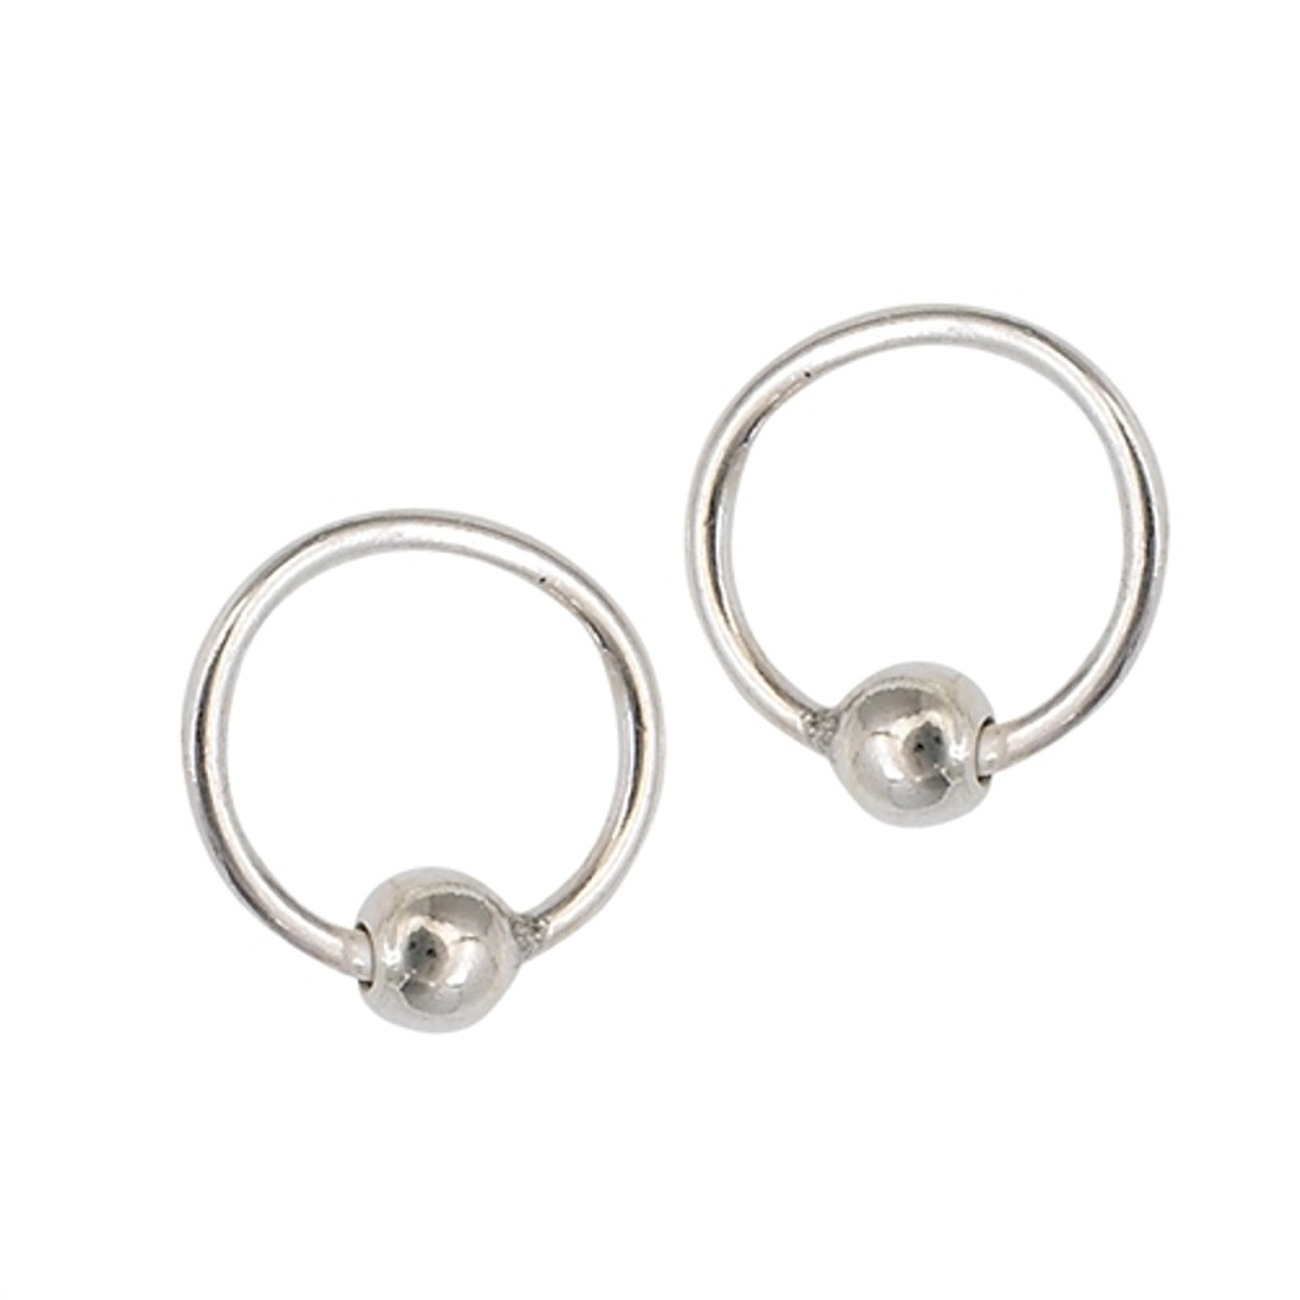 10mm Single Bead Ball Latch Hingeless Endless Captive Hoop Earrings